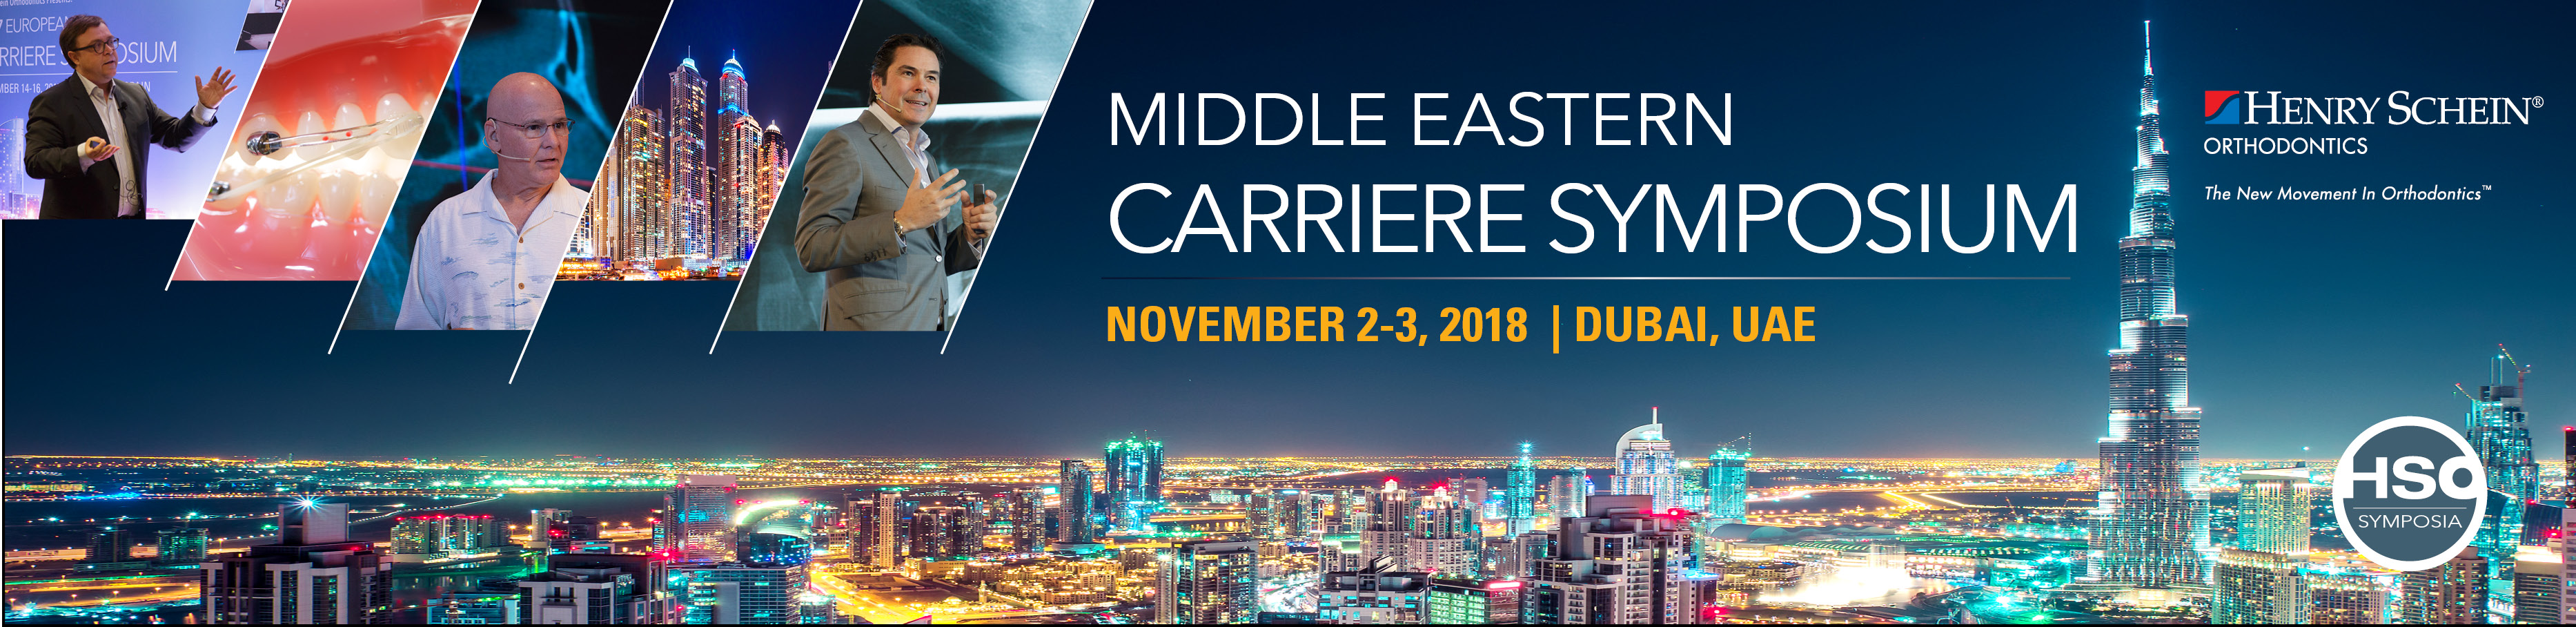 Middle Eastern Carriere Symposium